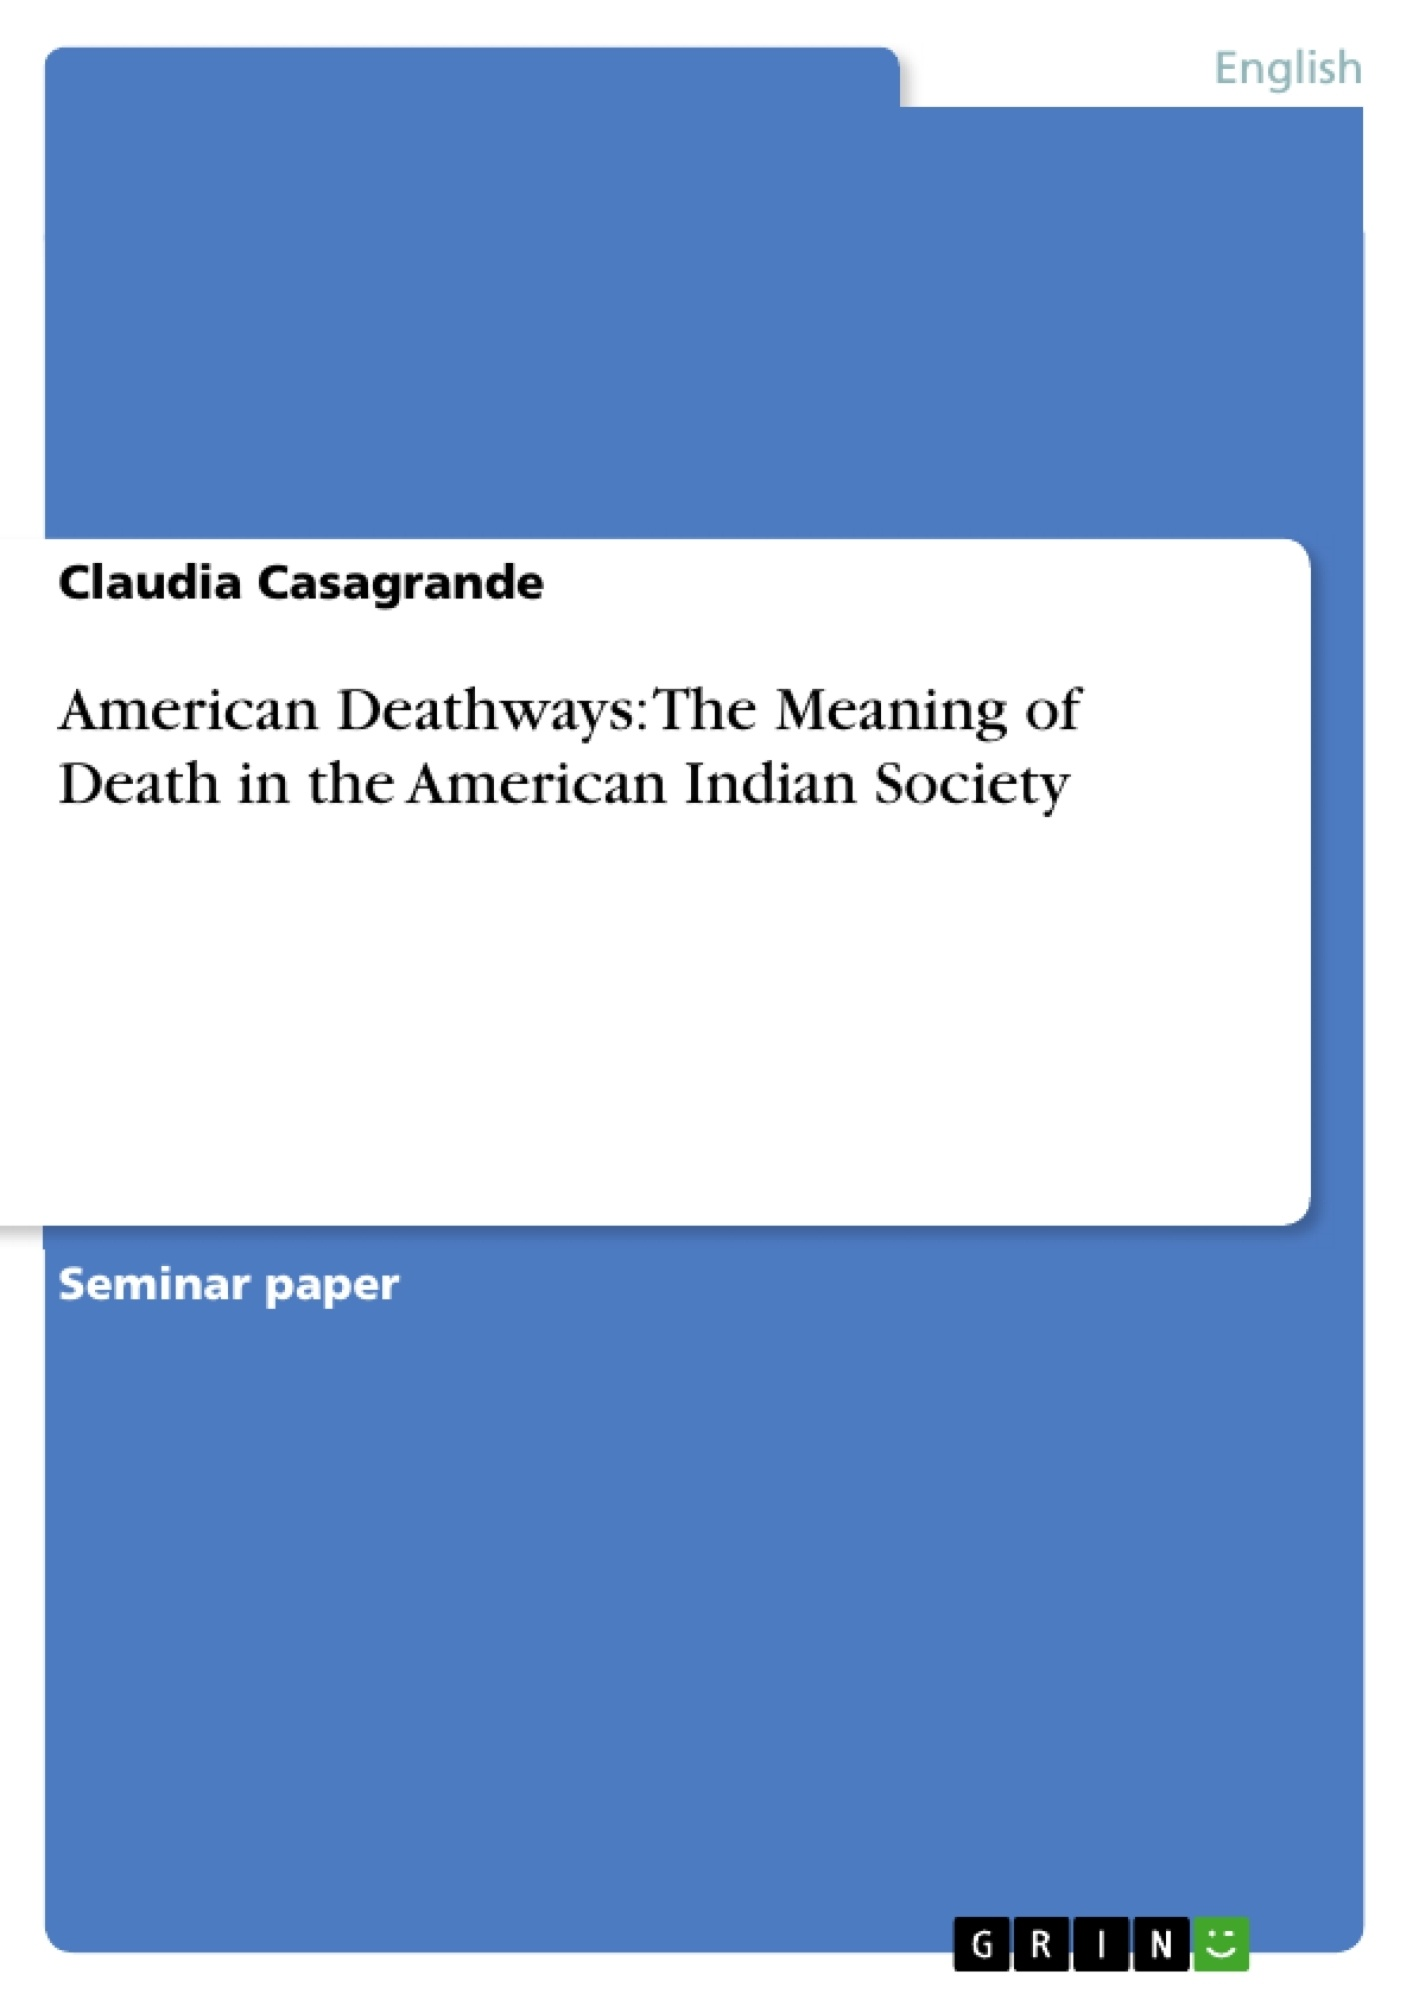 Title: American Deathways: The Meaning of Death in the American Indian Society